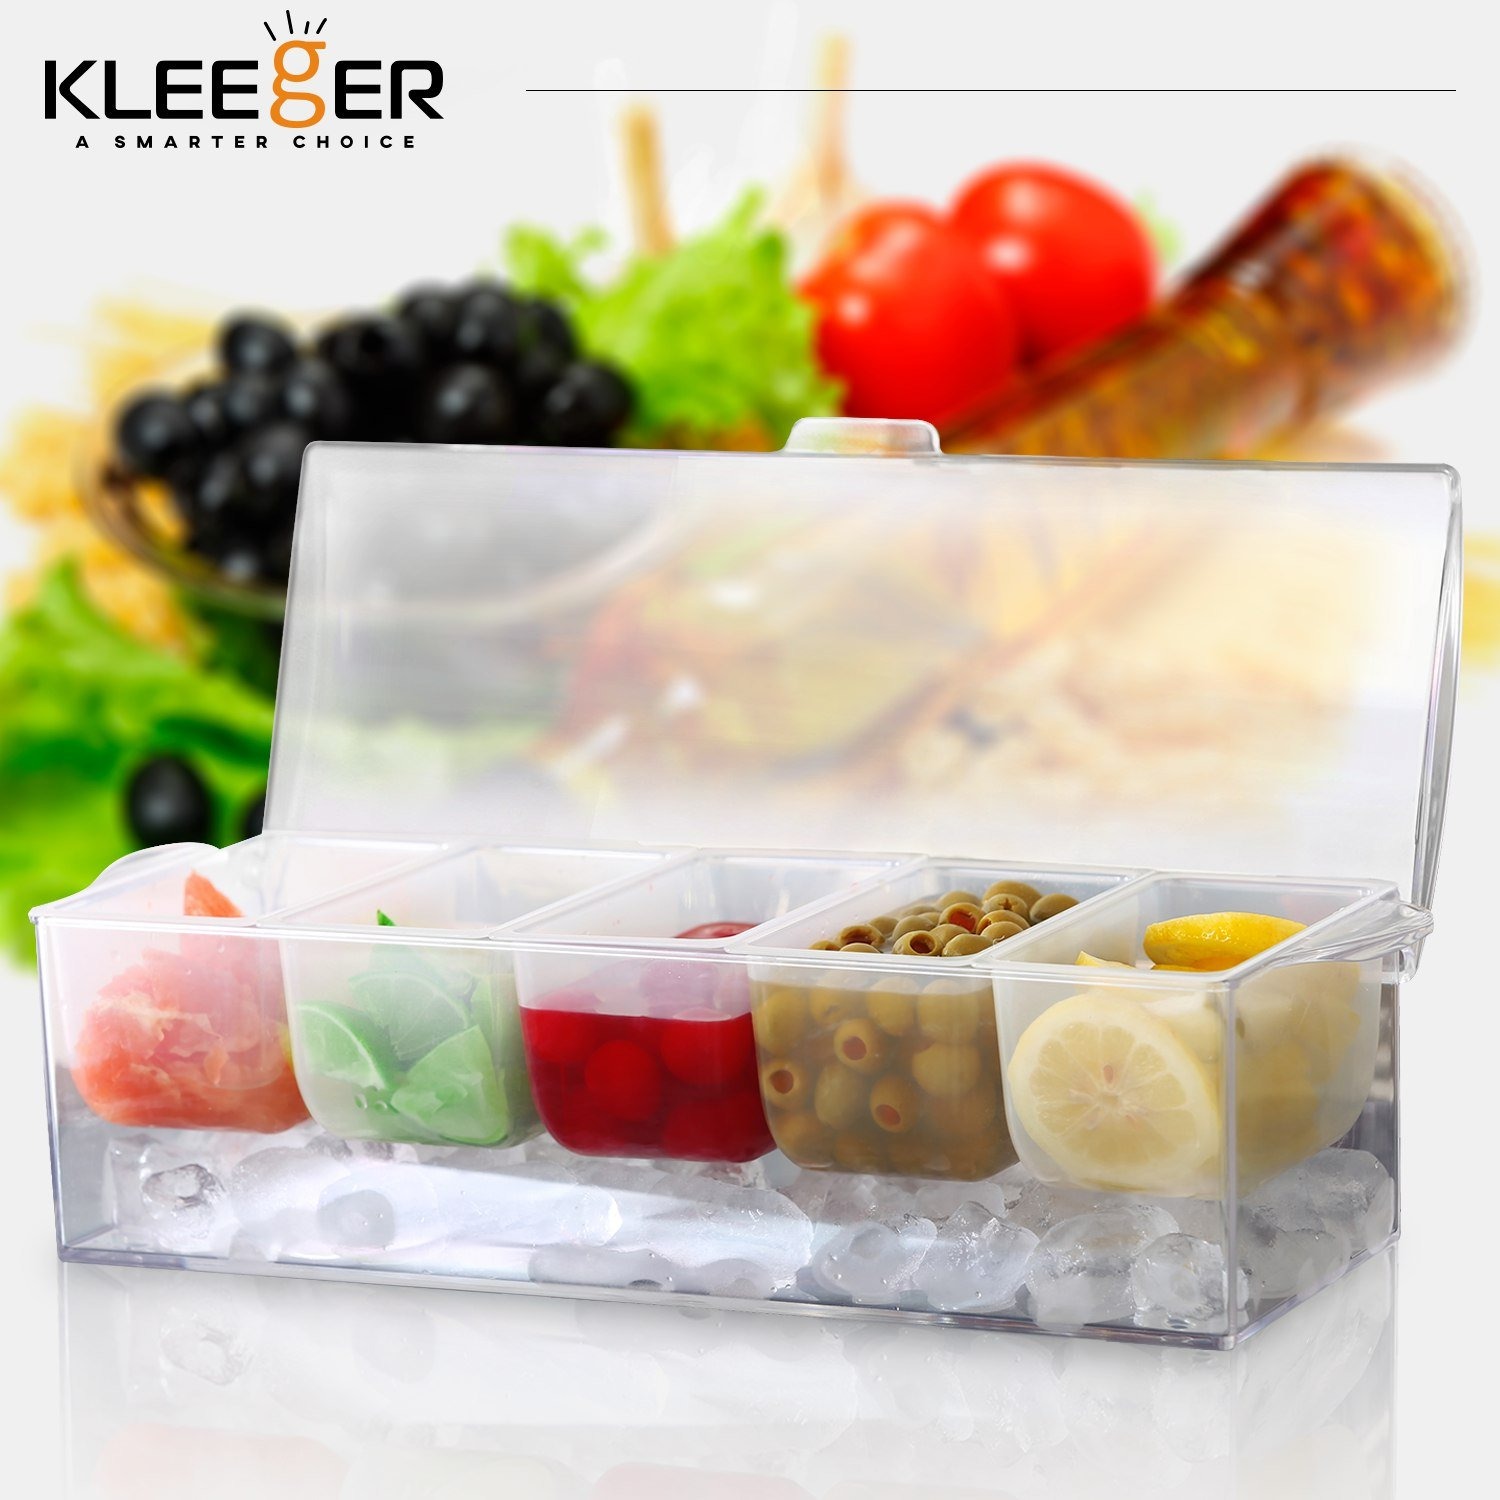 Kleeger Chilled Condiment Server With Lid: 5 Removable Compartments, Bottom Fills With Ice by KLEEGER (Image #9)